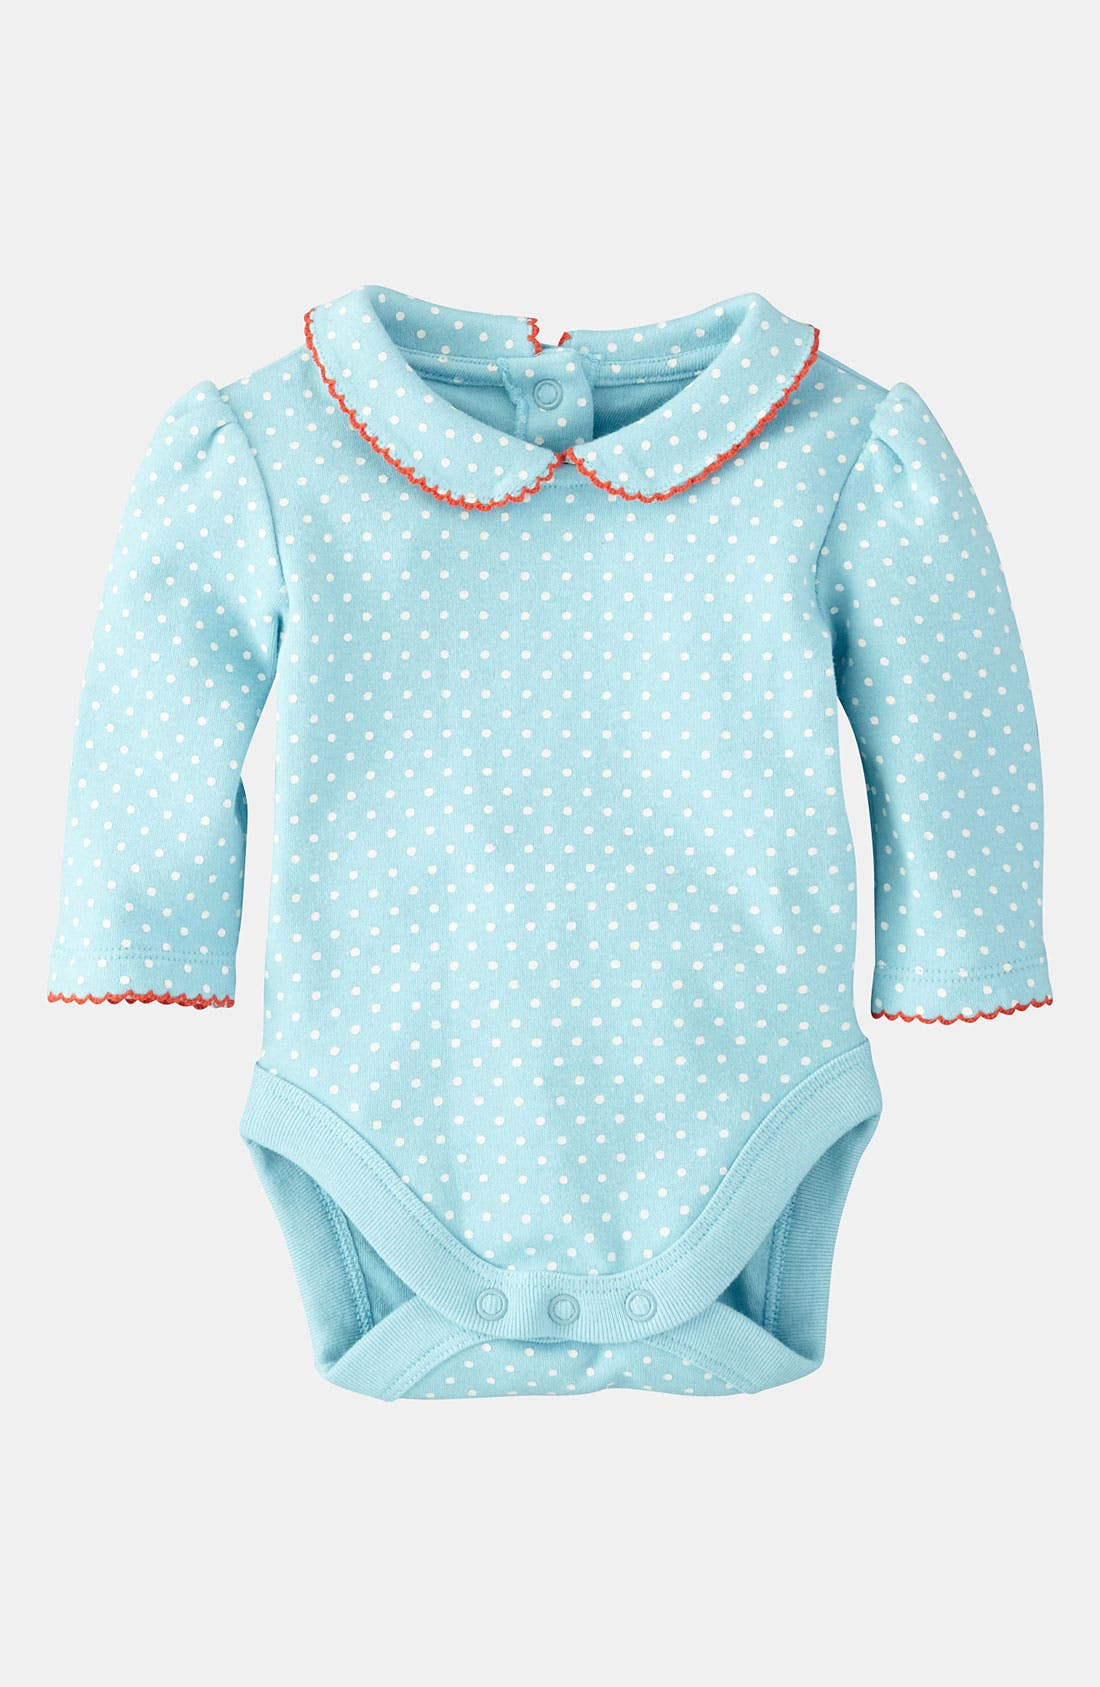 Main Image - Mini Boden 'Pretty' Collar Bodysuit (Infant)